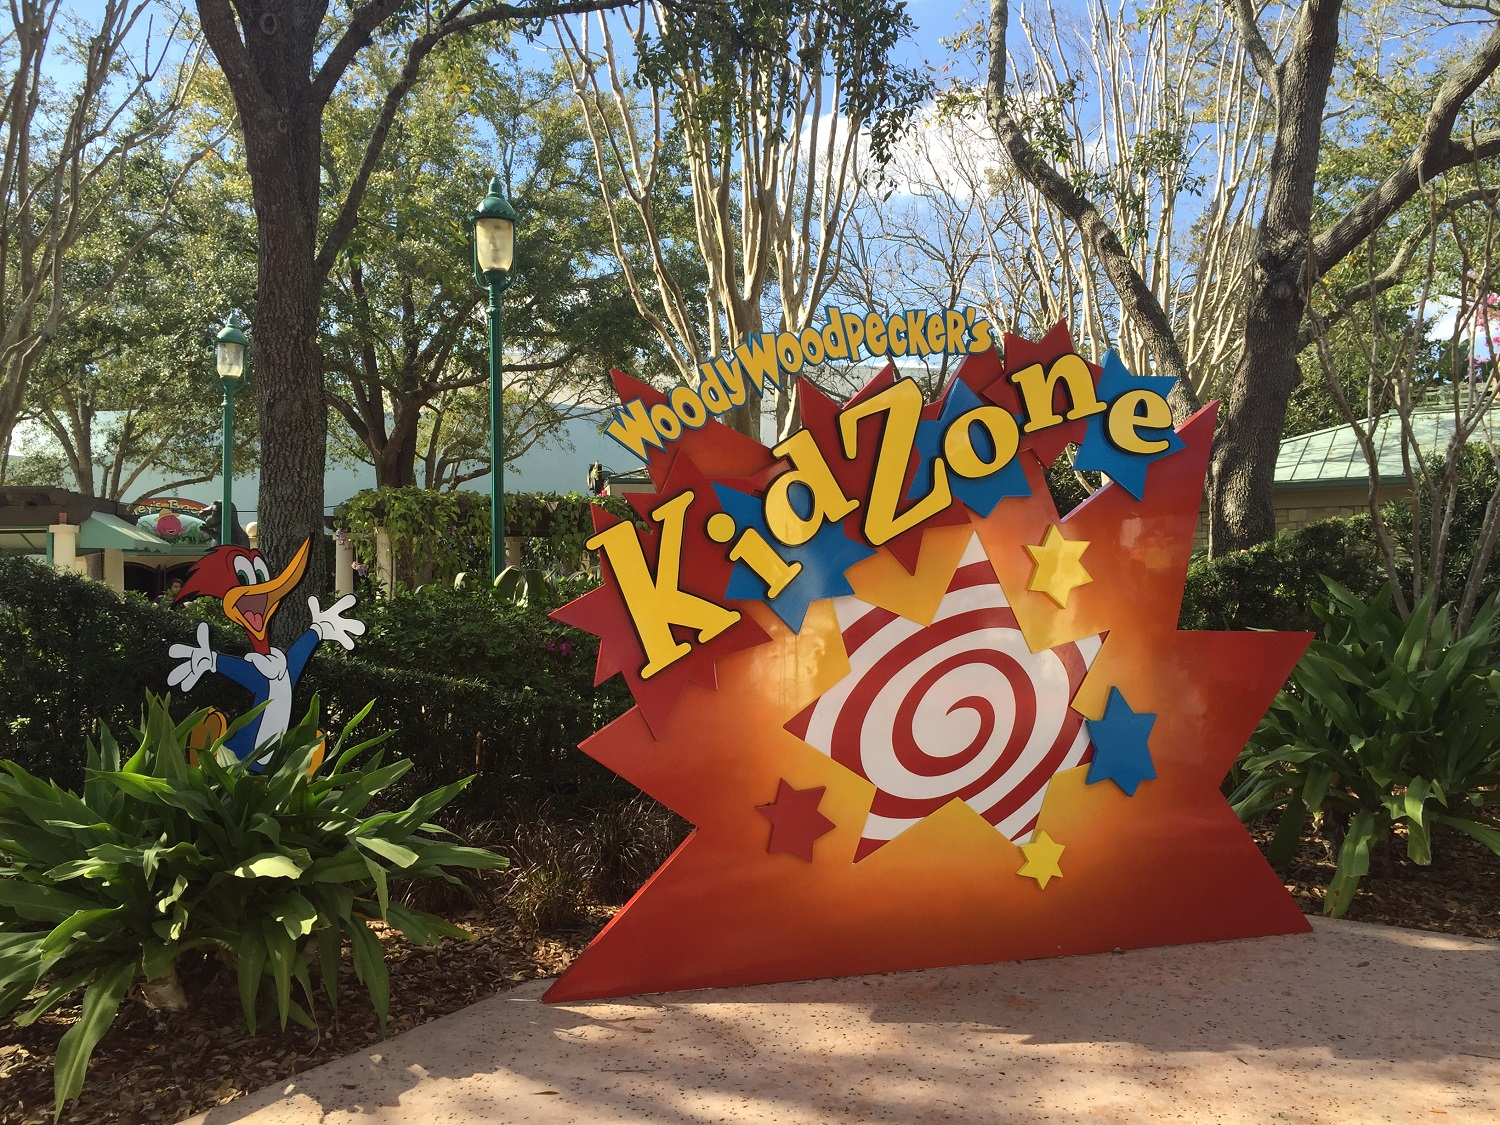 Woody Wodpecker's KidZone sign in Universal Studios Florida.